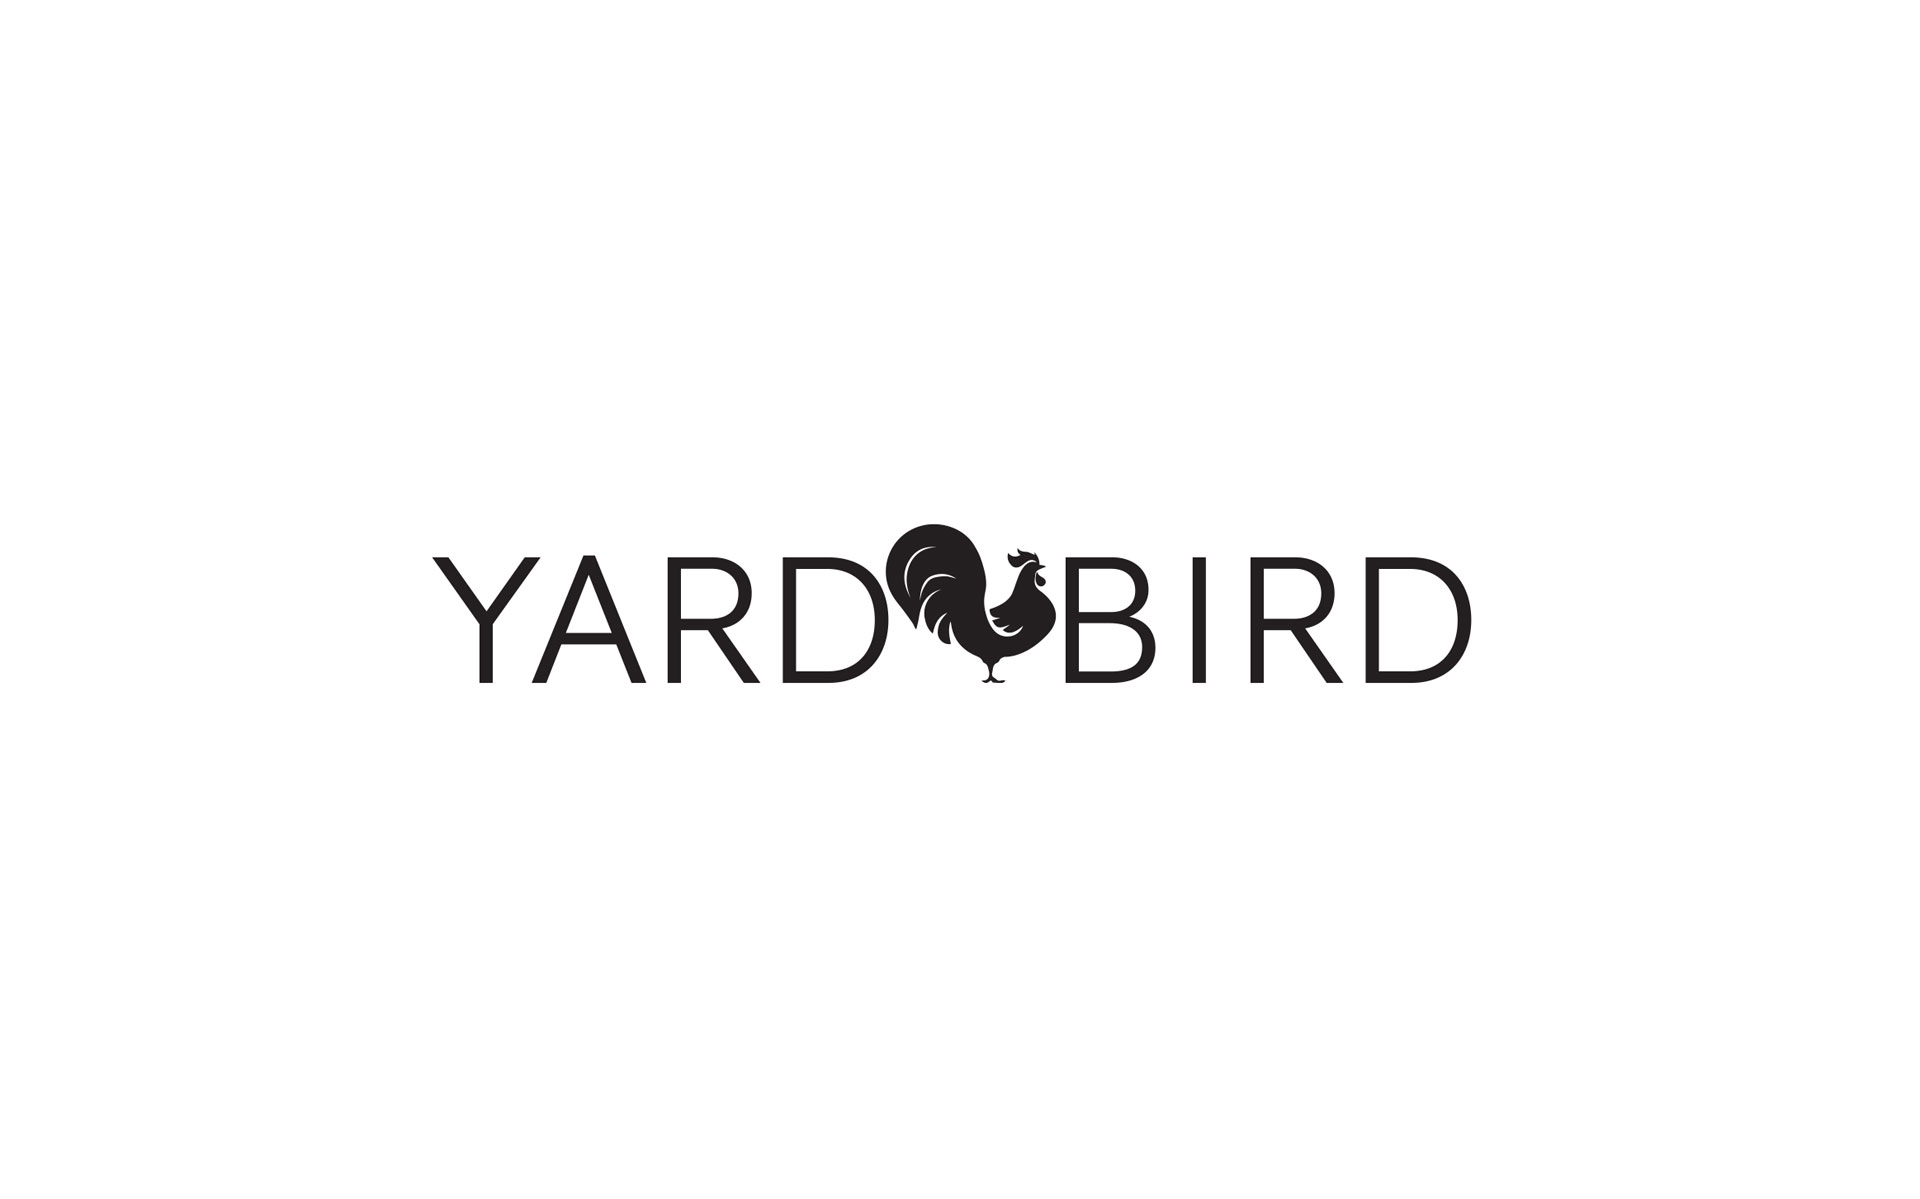 Yardbird branding designed by Amy at Yellow Sunday